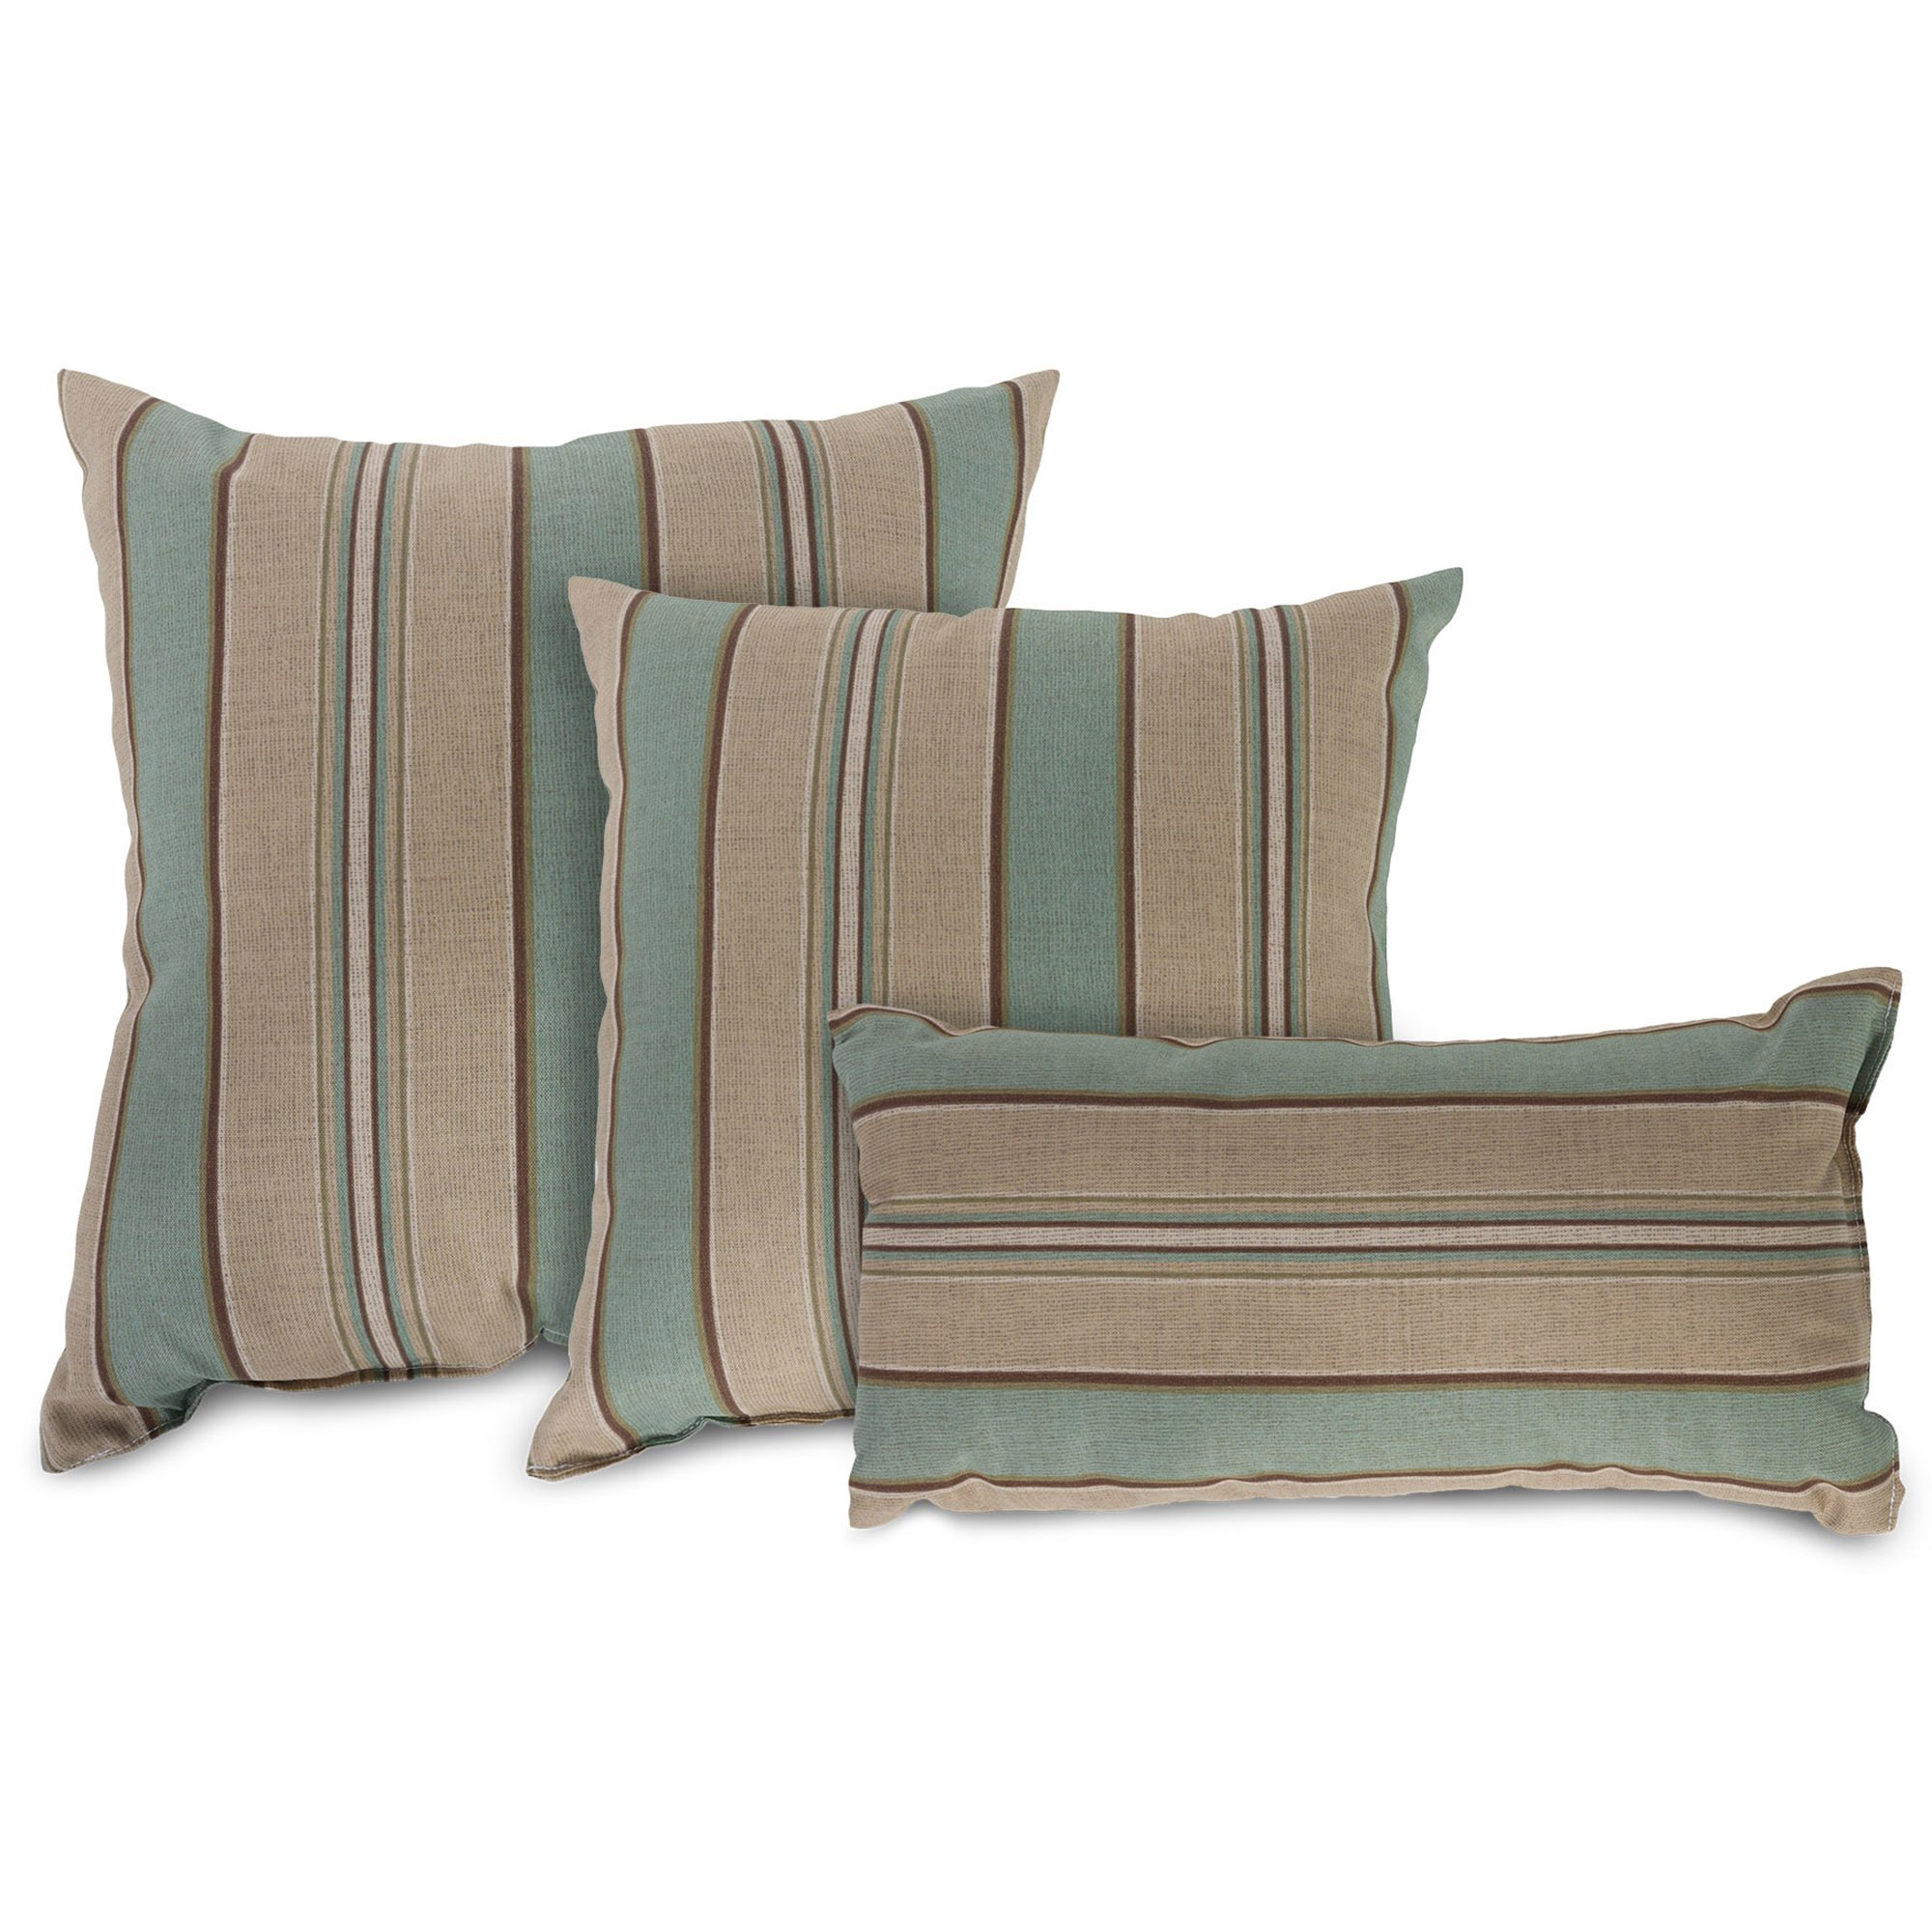 Small Square Decorative Pillows : Crestwood Spa Small Square Outdoor Pillow DFOHome